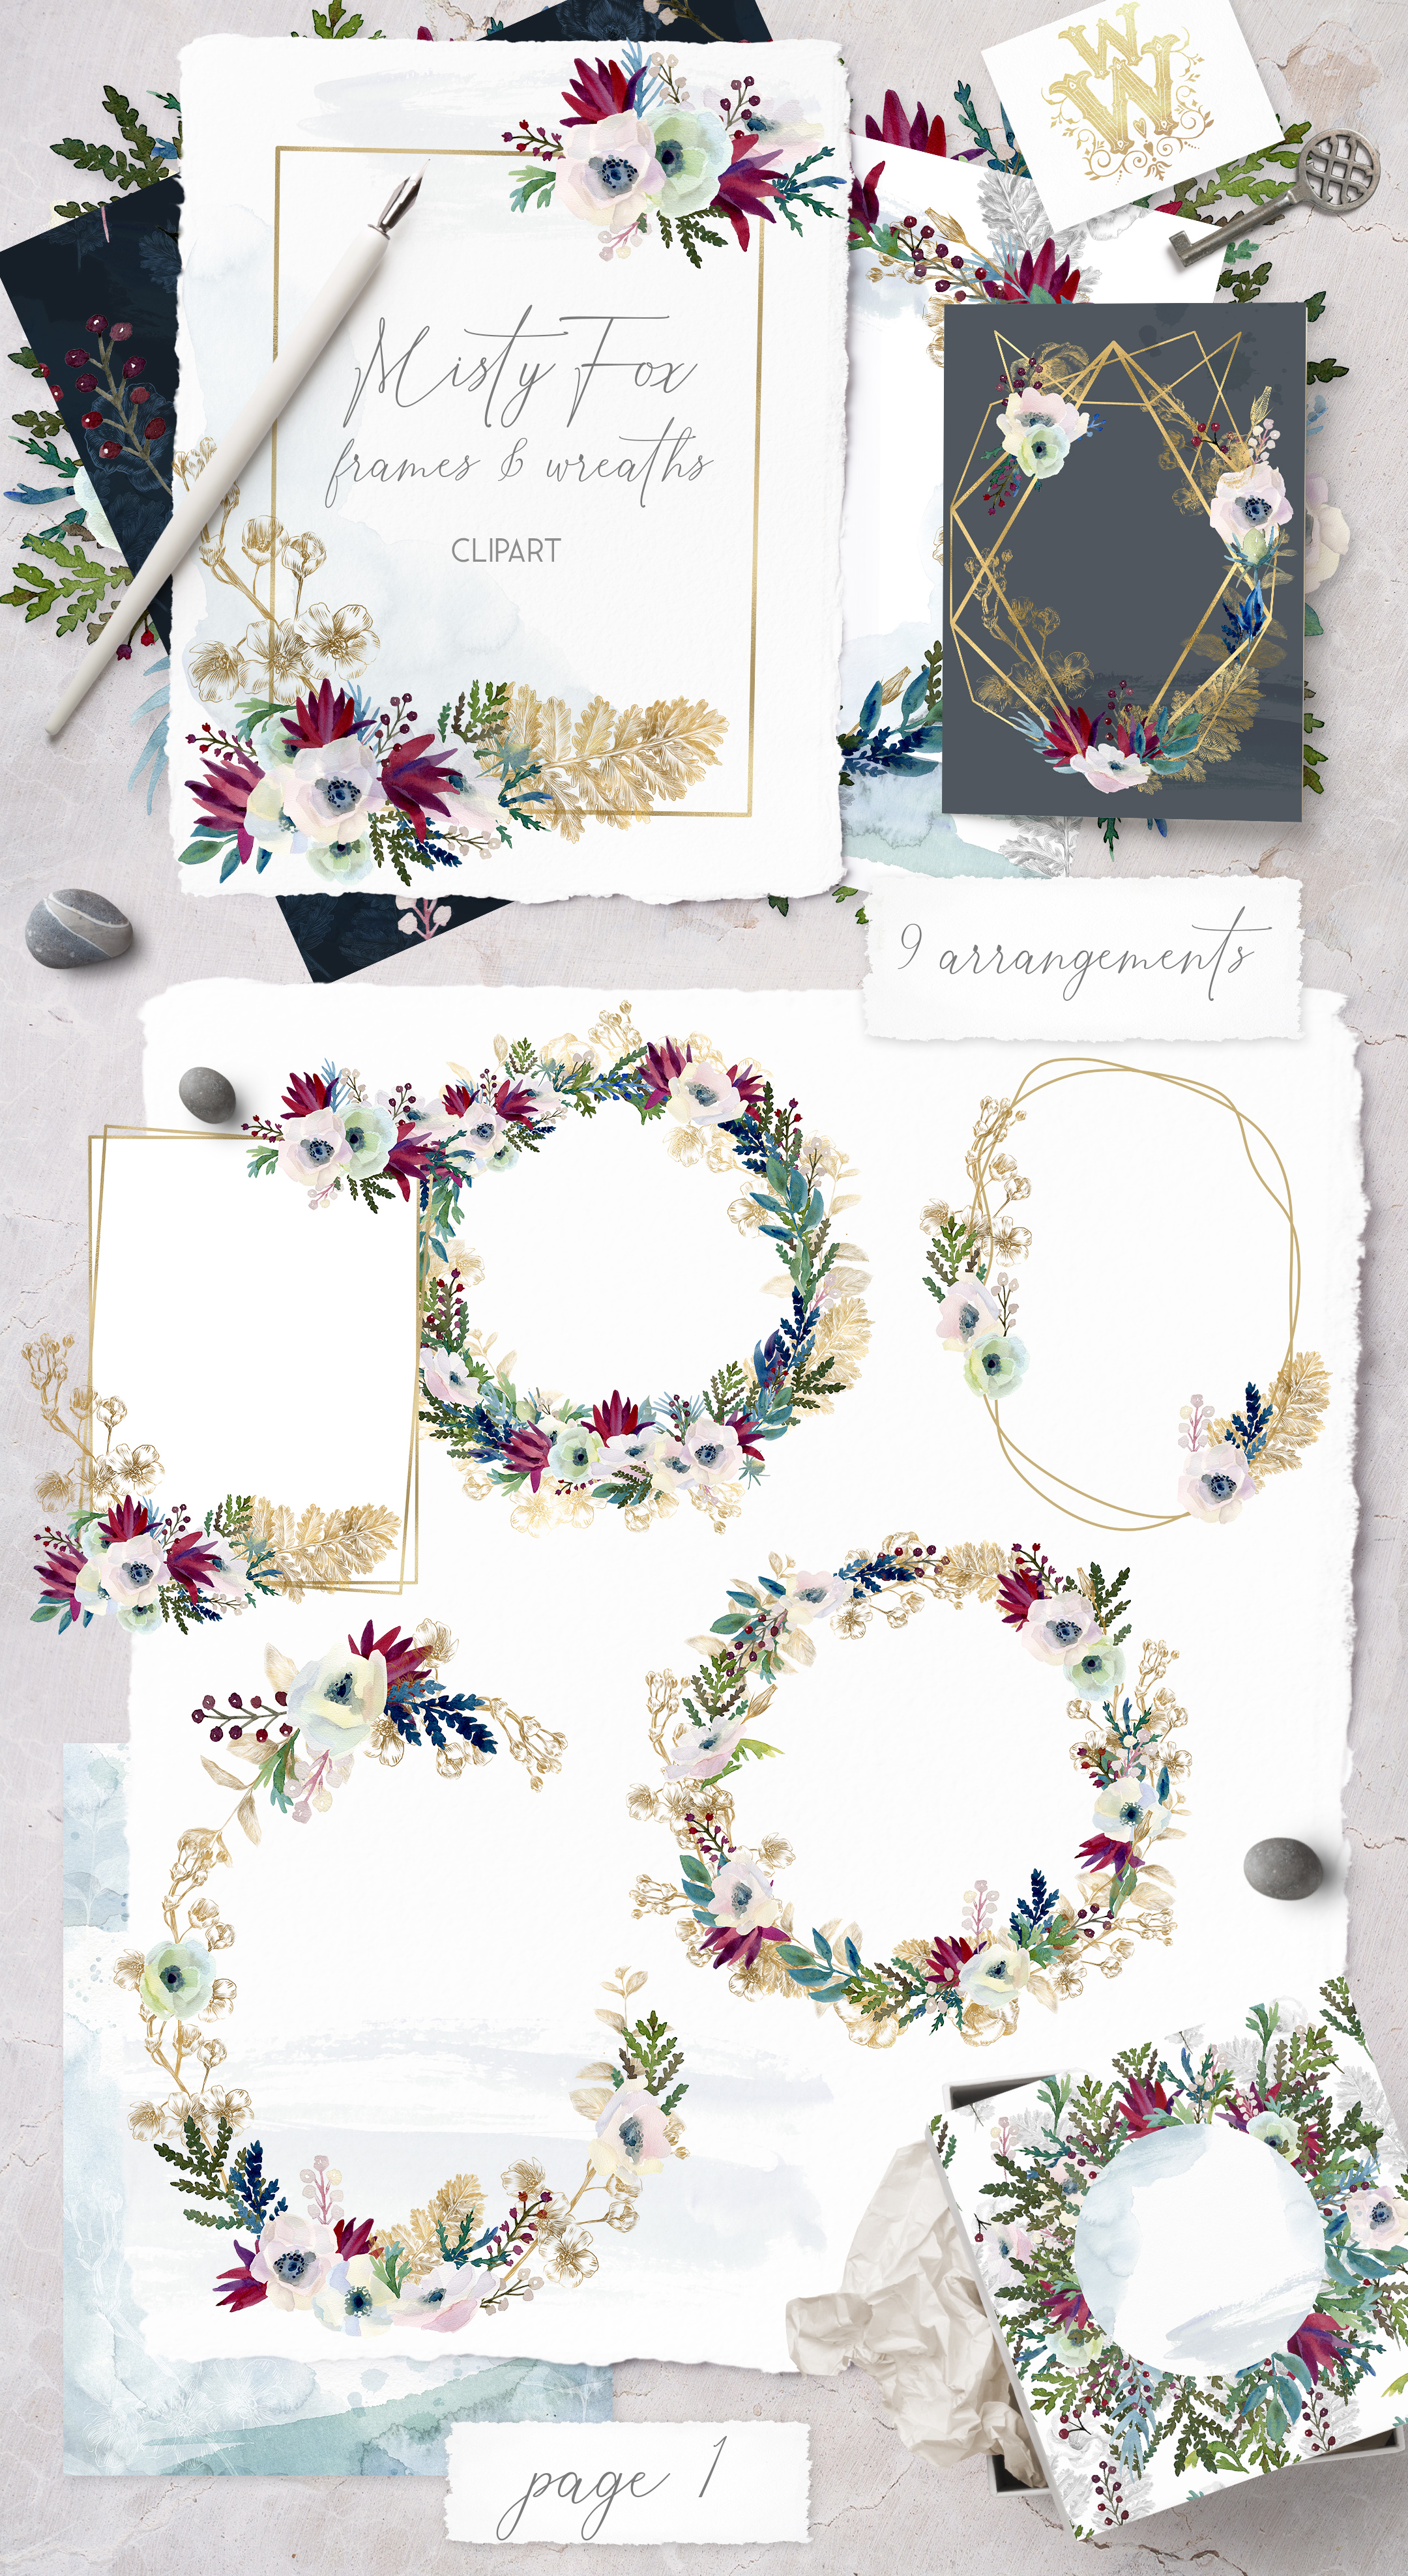 Watercolor white flowers frame, wedding wreath invitation example image 2